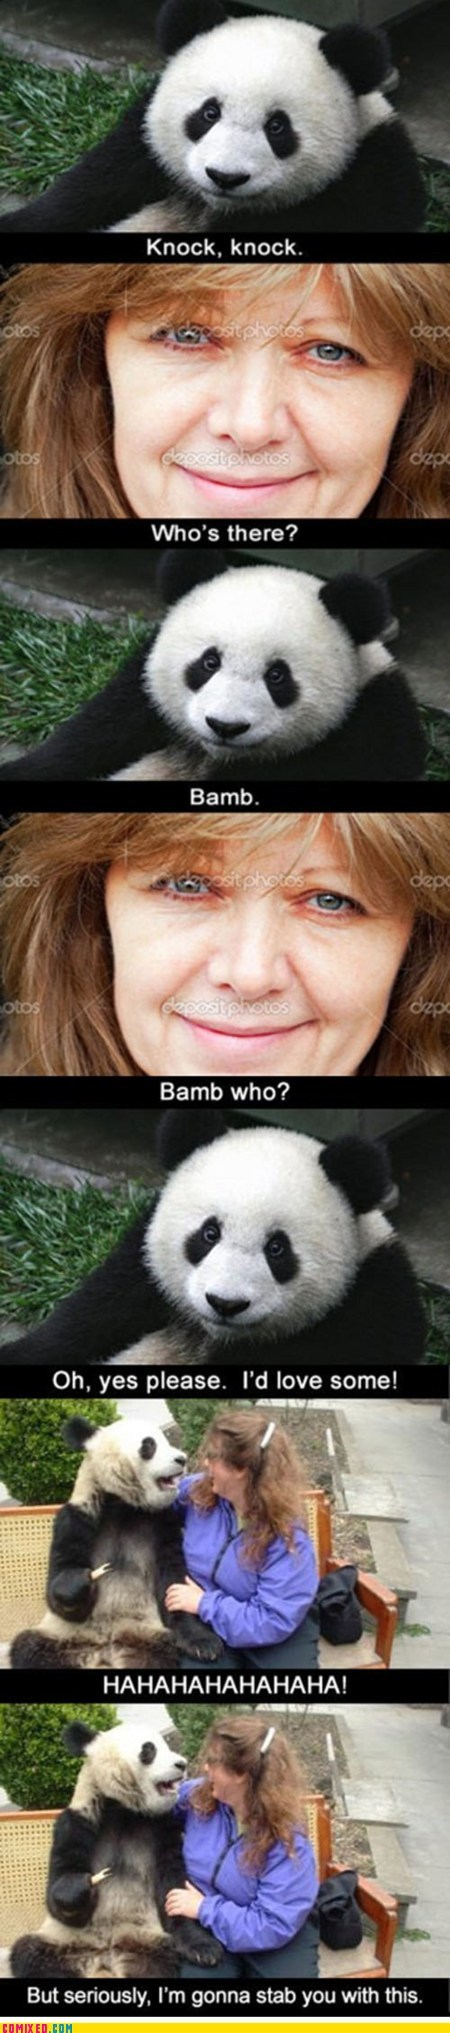 animals best of week cute knock knock panda stabbed - 6276681984